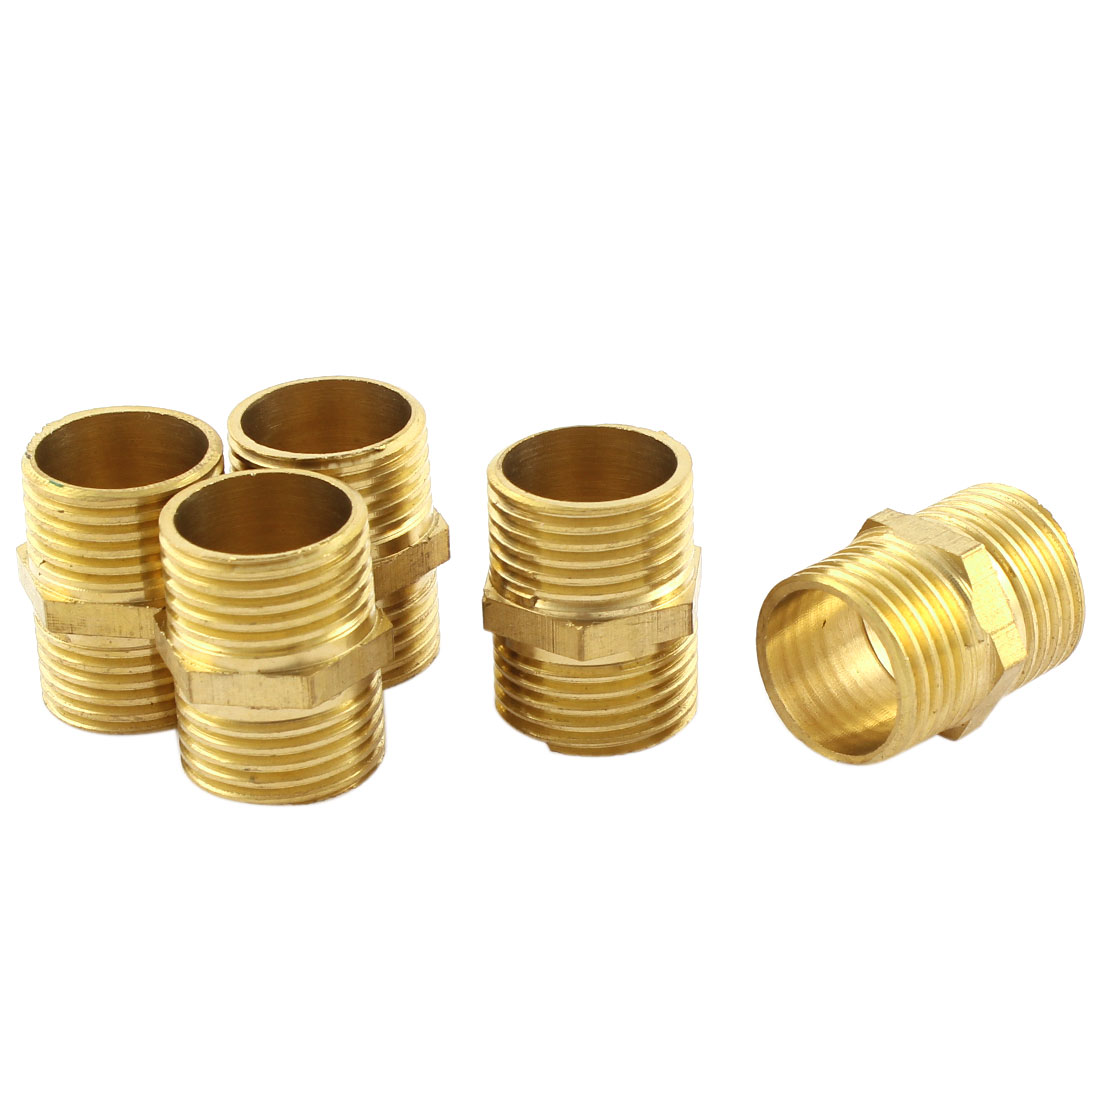 5 Pcs 1/2 BSP Male to Male Thread Equal Fitting Brass Hex Reducer Nipple Quick Connector